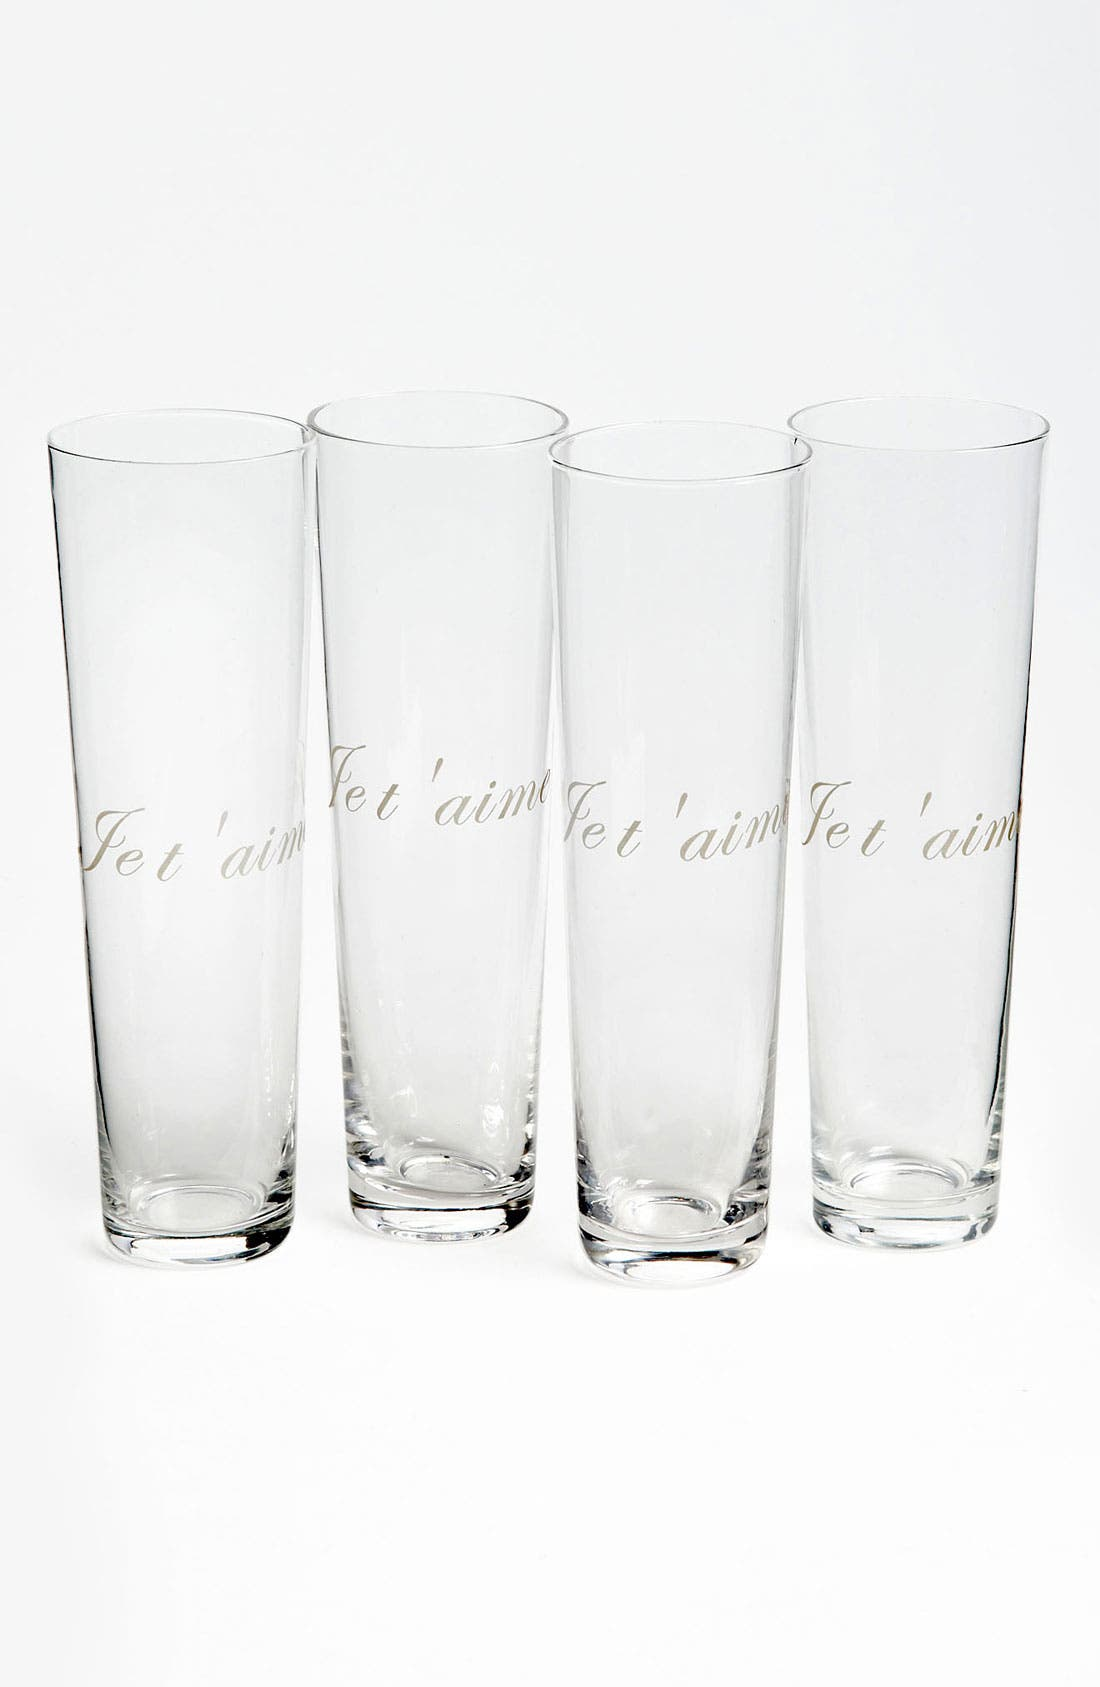 Alternate Image 1 Selected - 'Je t'aime' Etched Champagne Flutes (Set of 4)